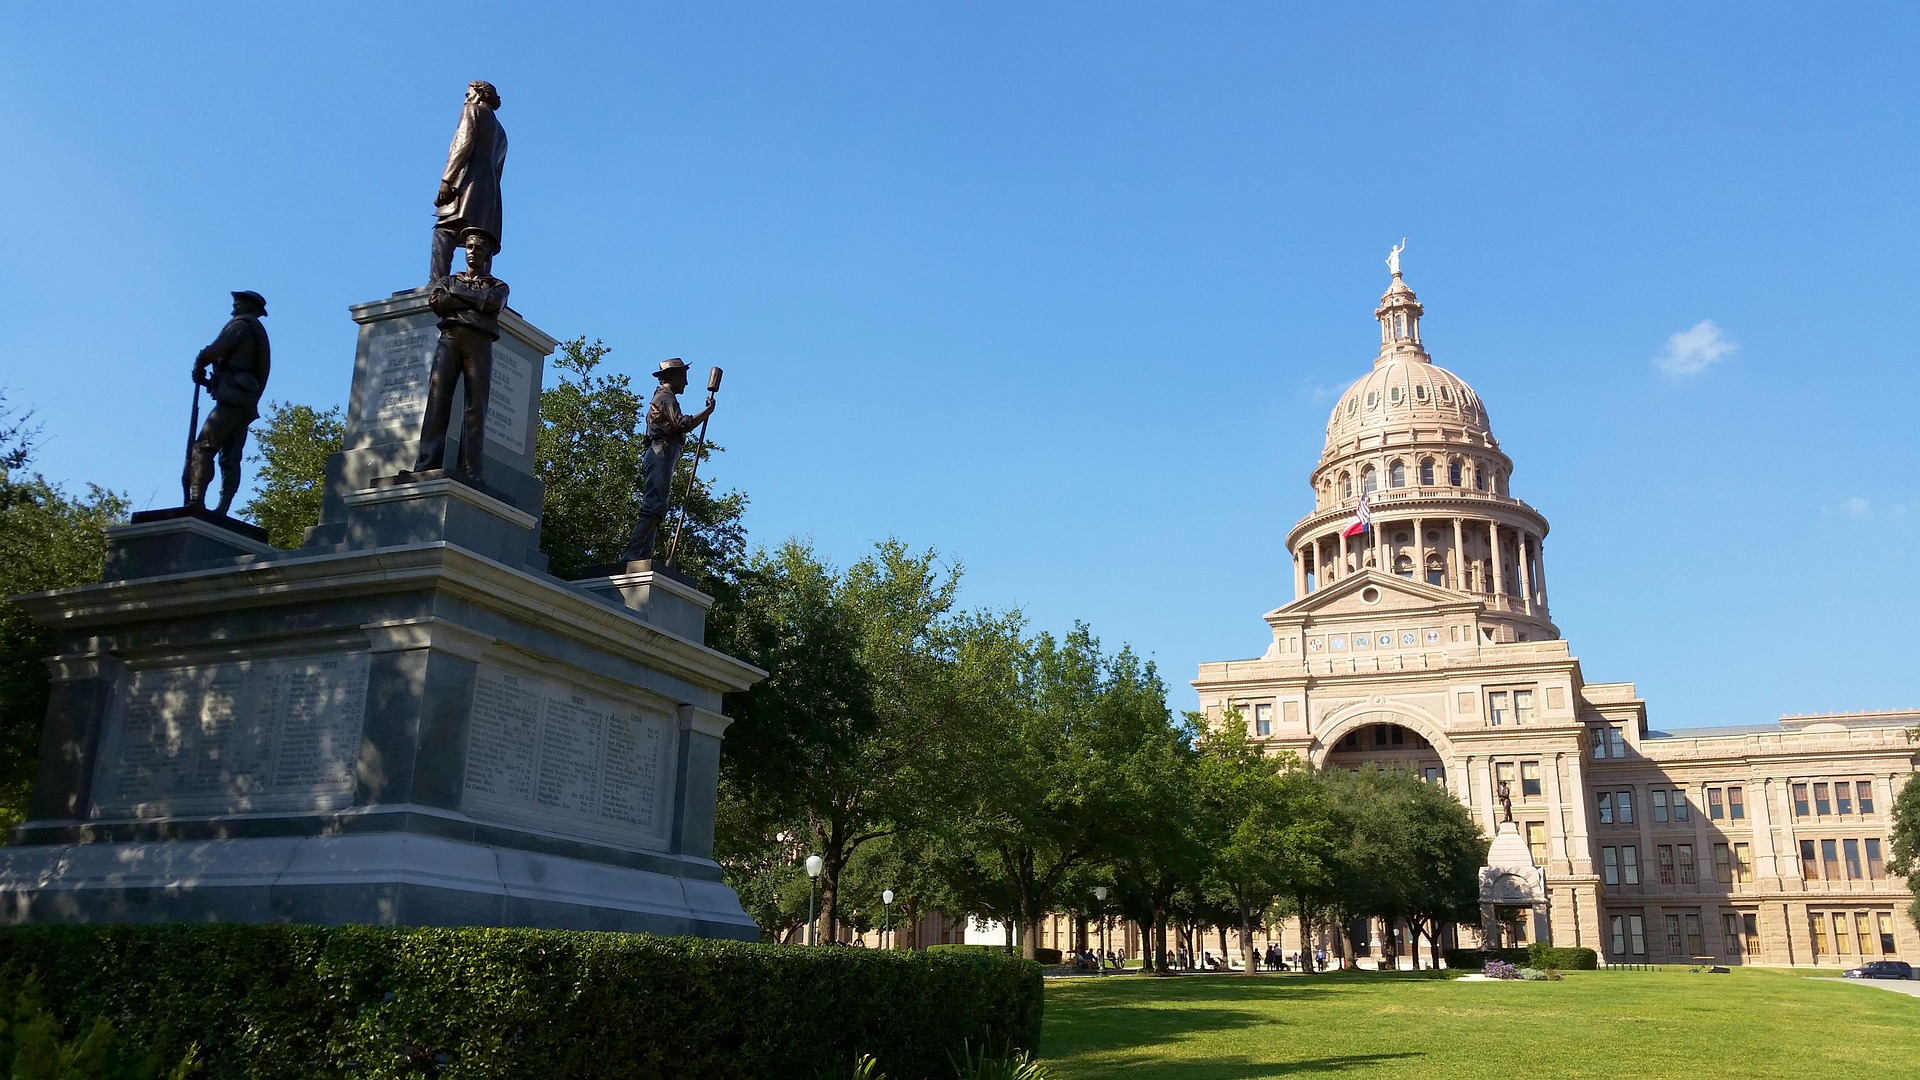 Texas Capitol Building in Austin, Texas - VeteranCarDonations.org